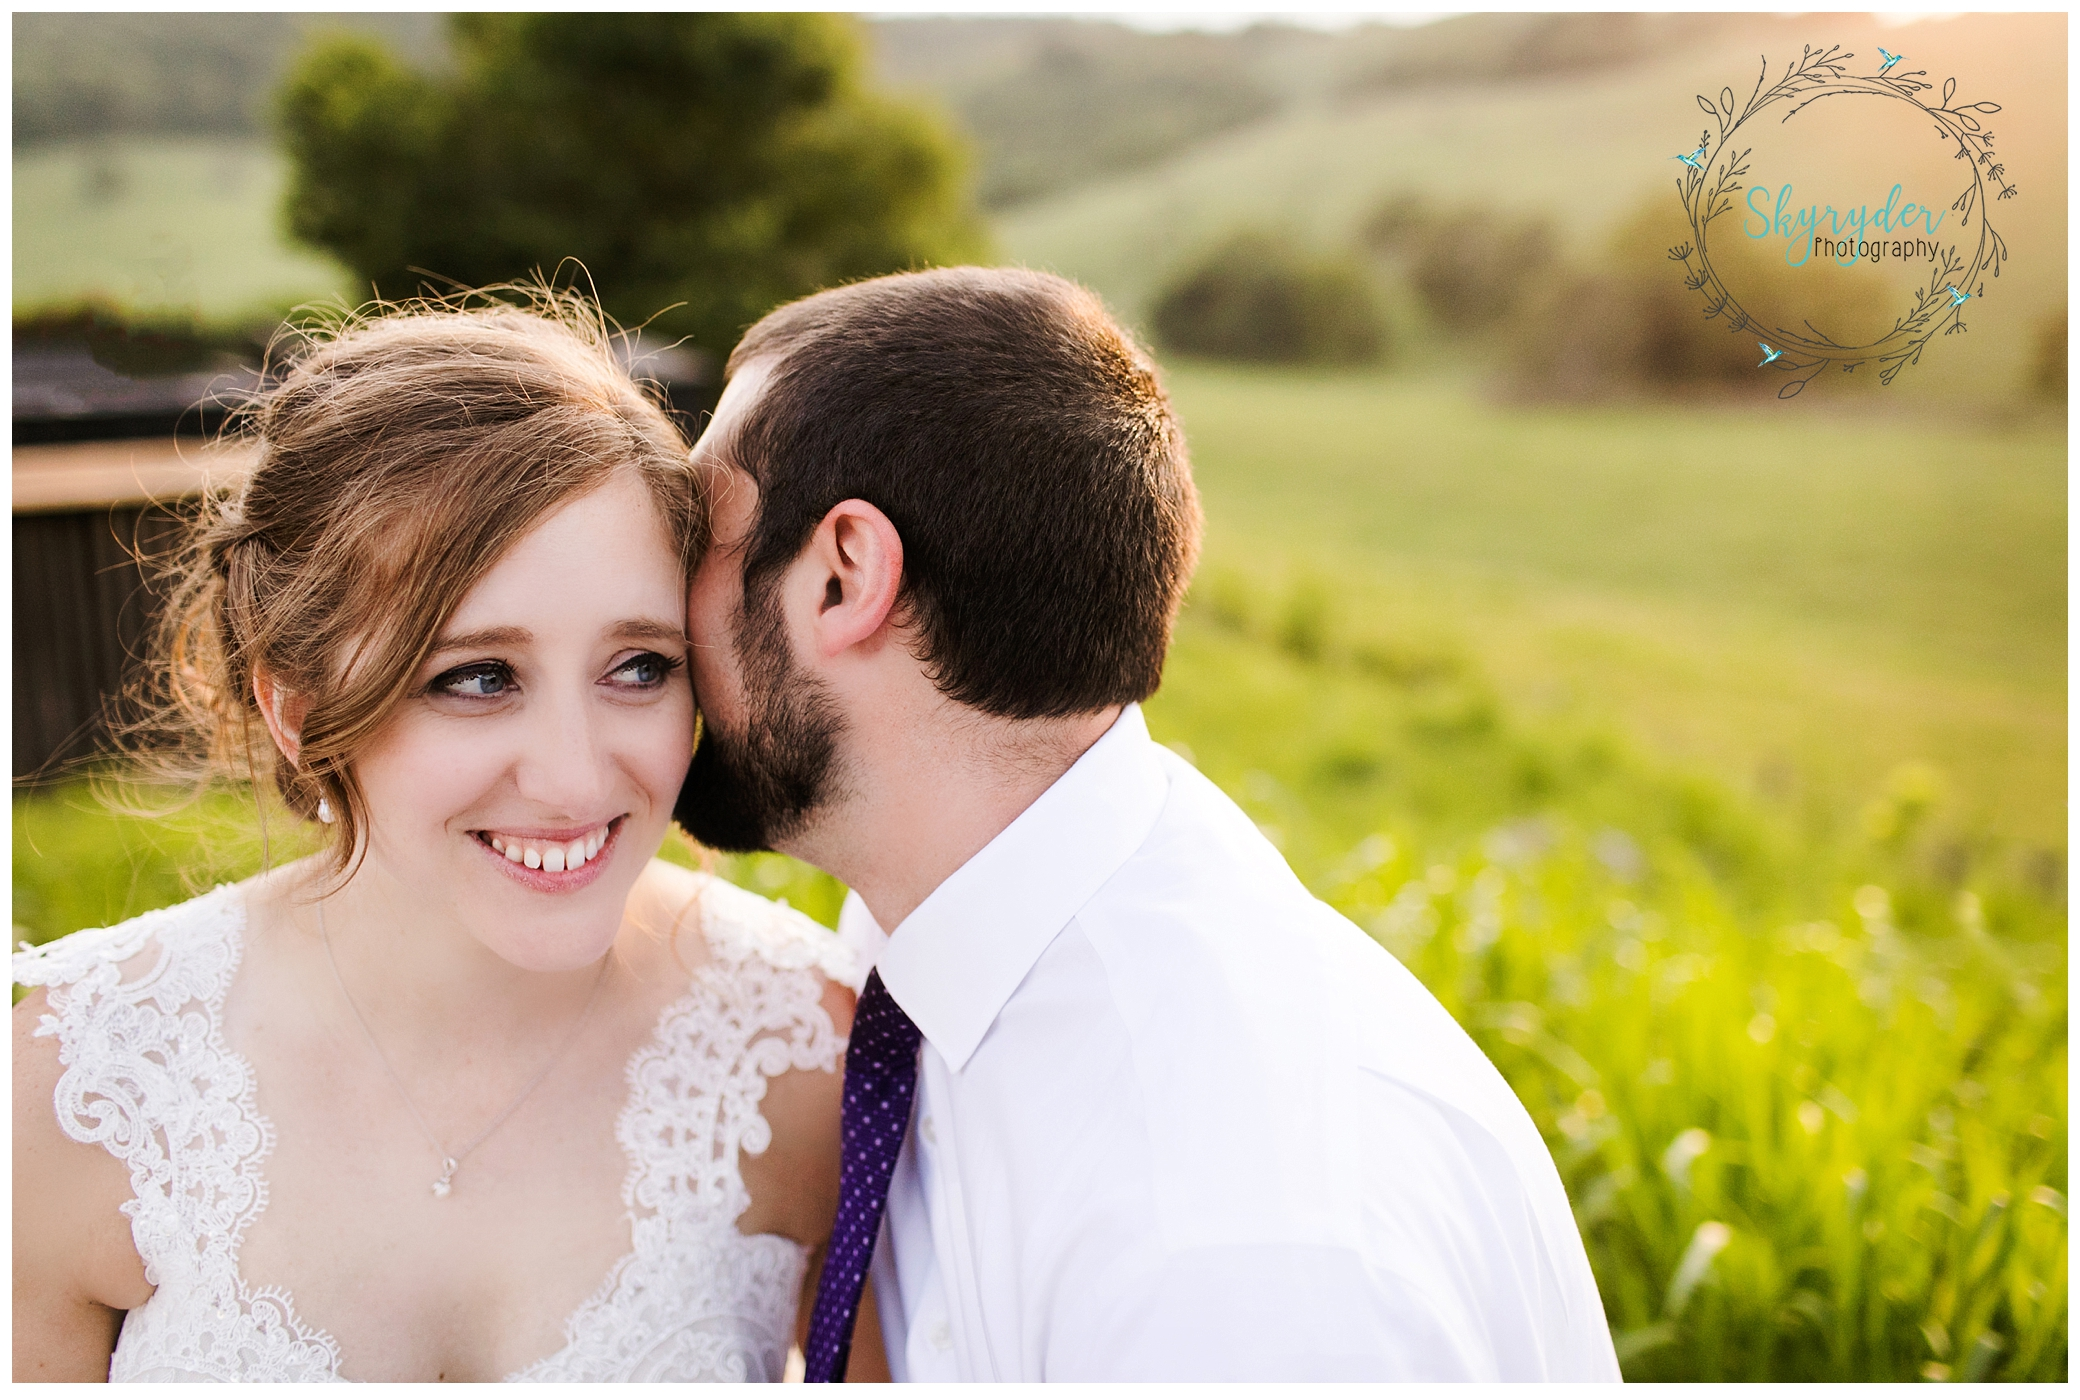 Christen + Chris | Doe Creek Farm Wedding Photographer